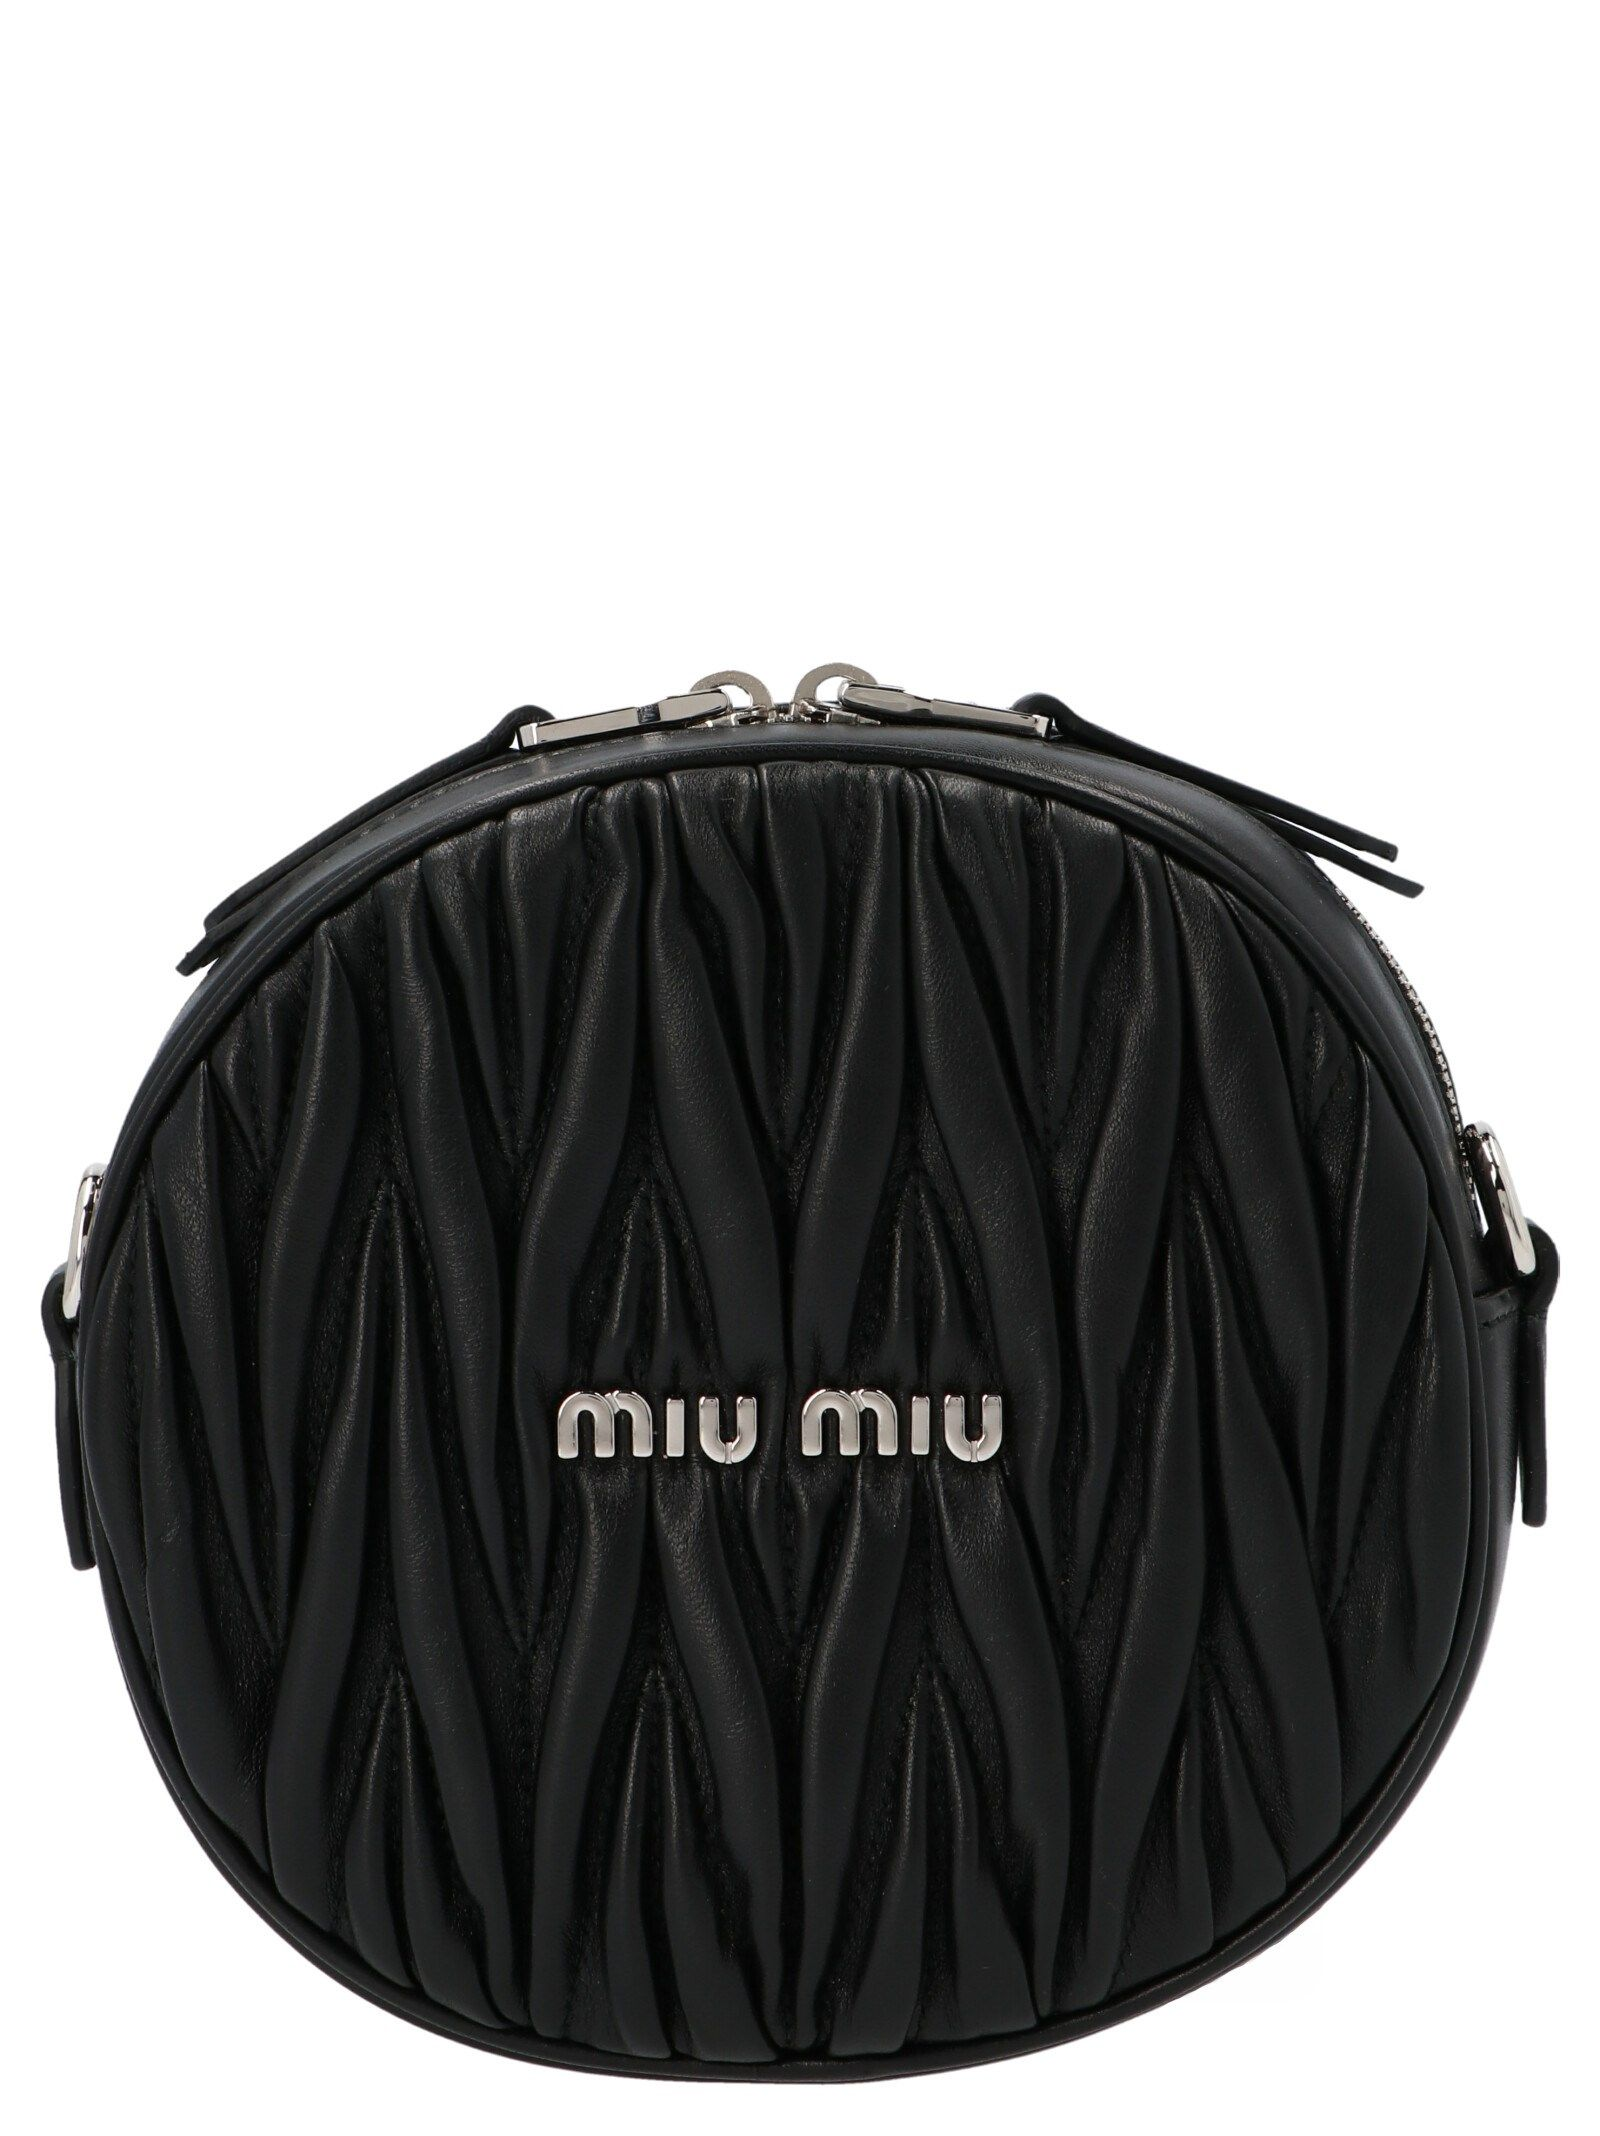 Miu Miu MIU MIU WOMEN'S 5BH1912CE3F0002 BLACK OTHER MATERIALS SHOULDER BAG